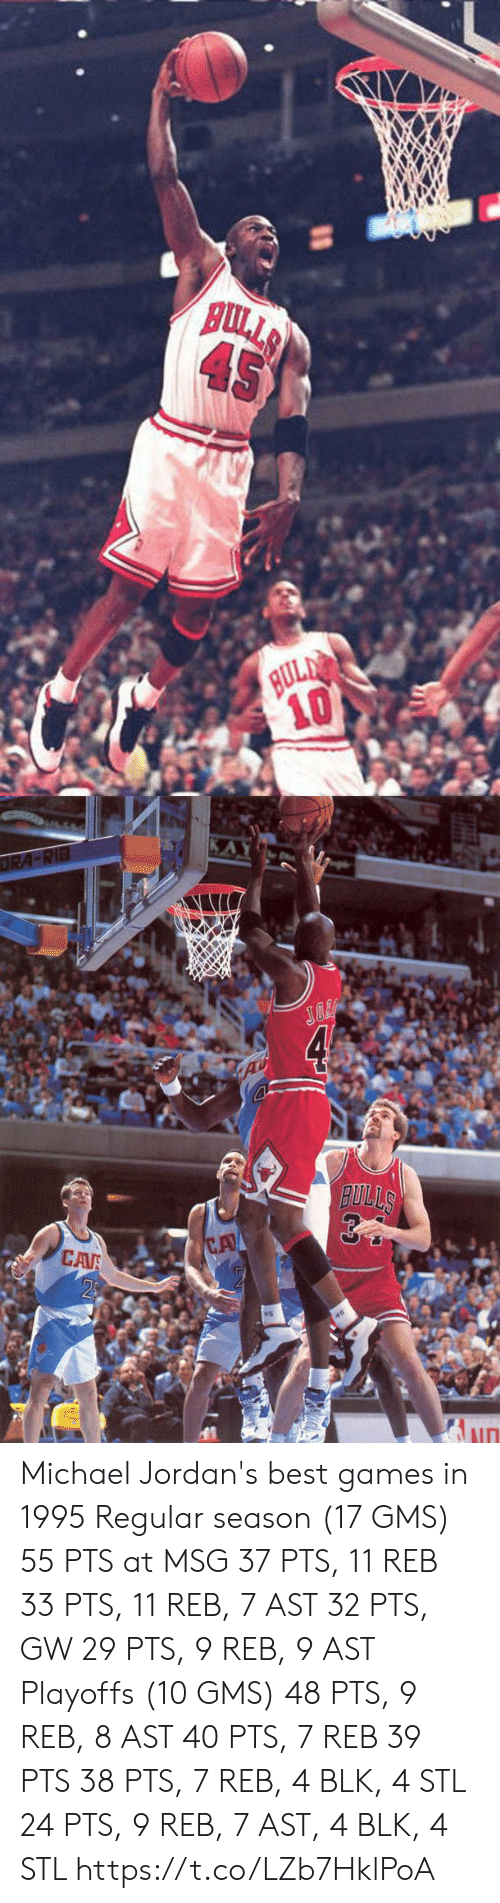 season 17: Michael Jordan's best games in 1995  Regular season (17 GMS) 55 PTS at MSG 37 PTS, 11 REB 33 PTS, 11 REB, 7 AST 32 PTS, GW 29 PTS, 9 REB, 9 AST  Playoffs (10 GMS) 48 PTS, 9 REB, 8 AST 40 PTS, 7 REB 39 PTS 38 PTS, 7 REB, 4 BLK, 4 STL 24 PTS, 9 REB, 7 AST, 4 BLK, 4 STL https://t.co/LZb7HklPoA